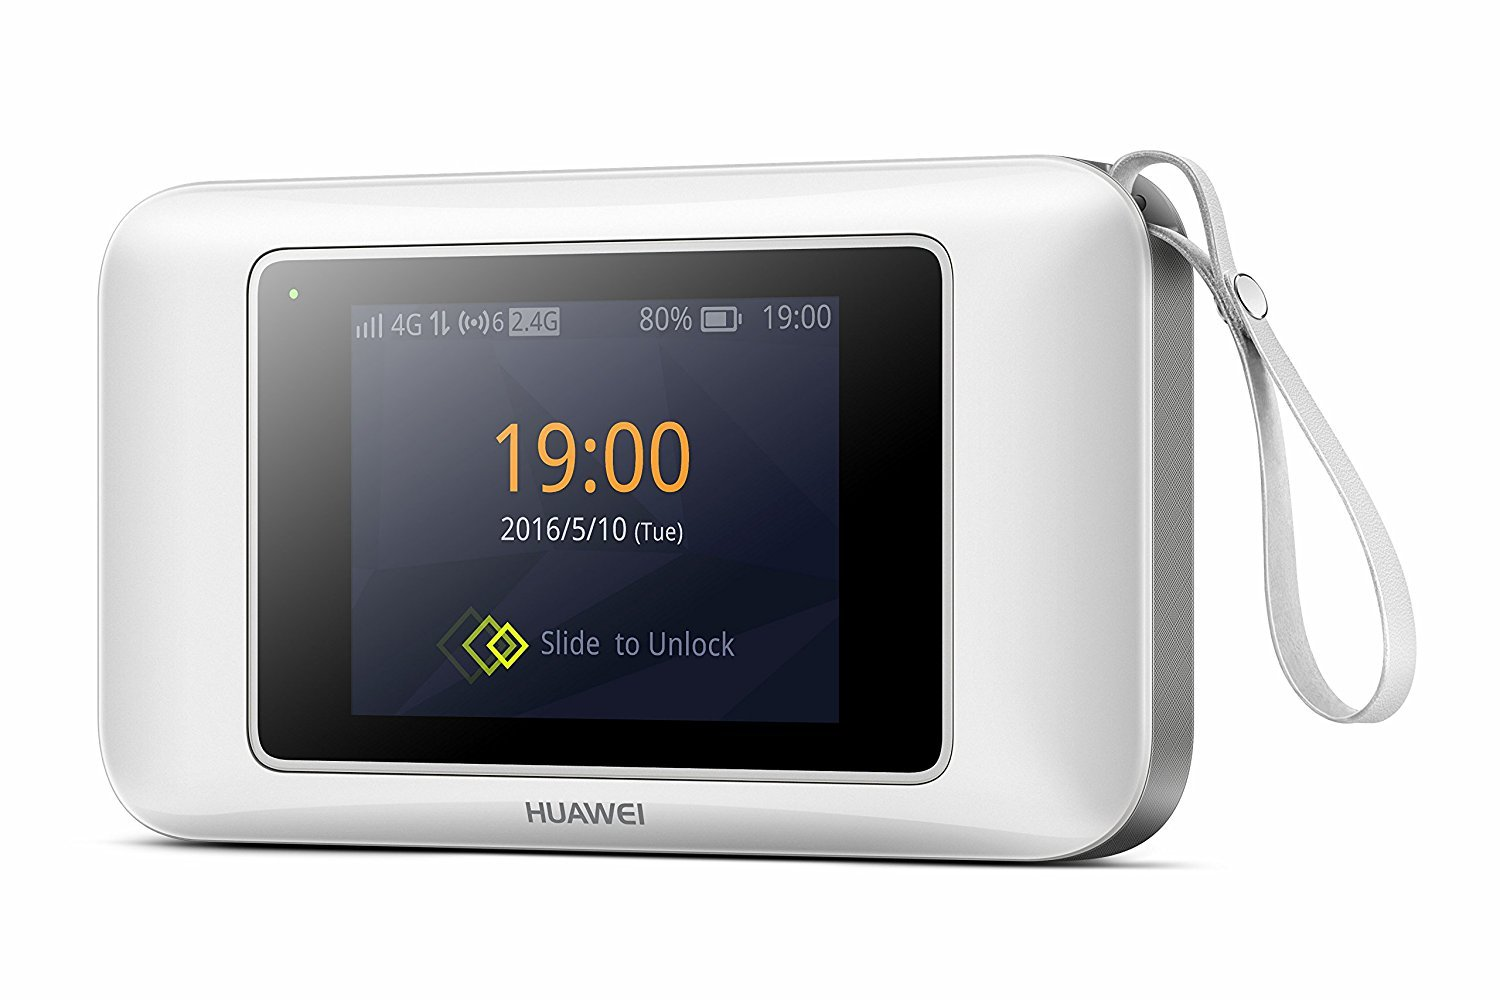 Huawei E5787s-33a 300 Mbps 4G LTE & 43.2 Mpbs 3G Mobile WiFi (4G LTE in Europe, Asia, Middle East, Africa & 3G globally) (White) by Huawei